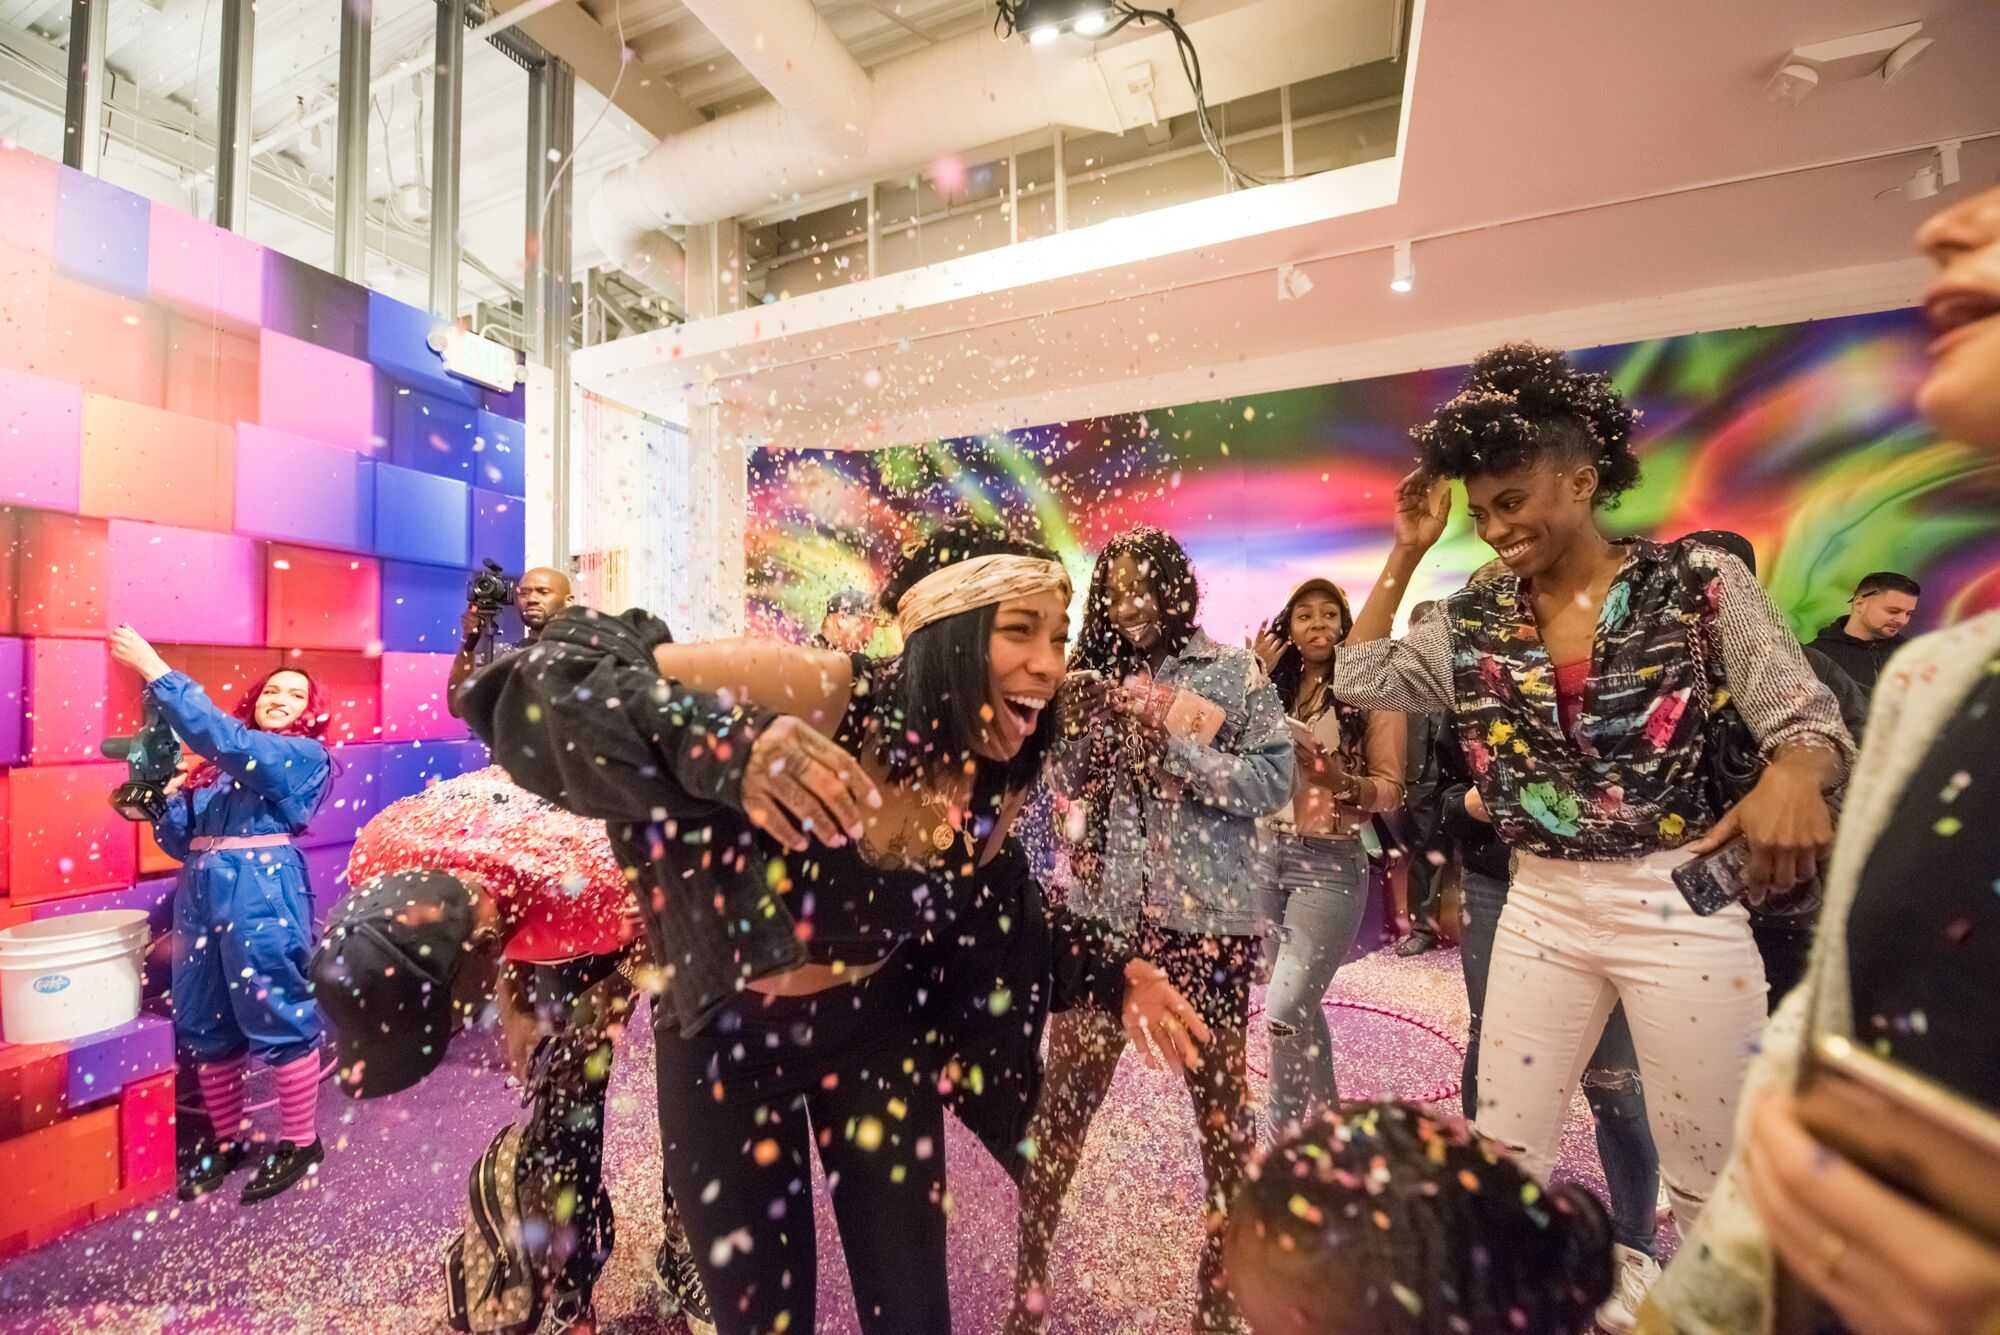 Dreka Gates Spends Opening Day of CandyTopia Art Exhibit [Photos]